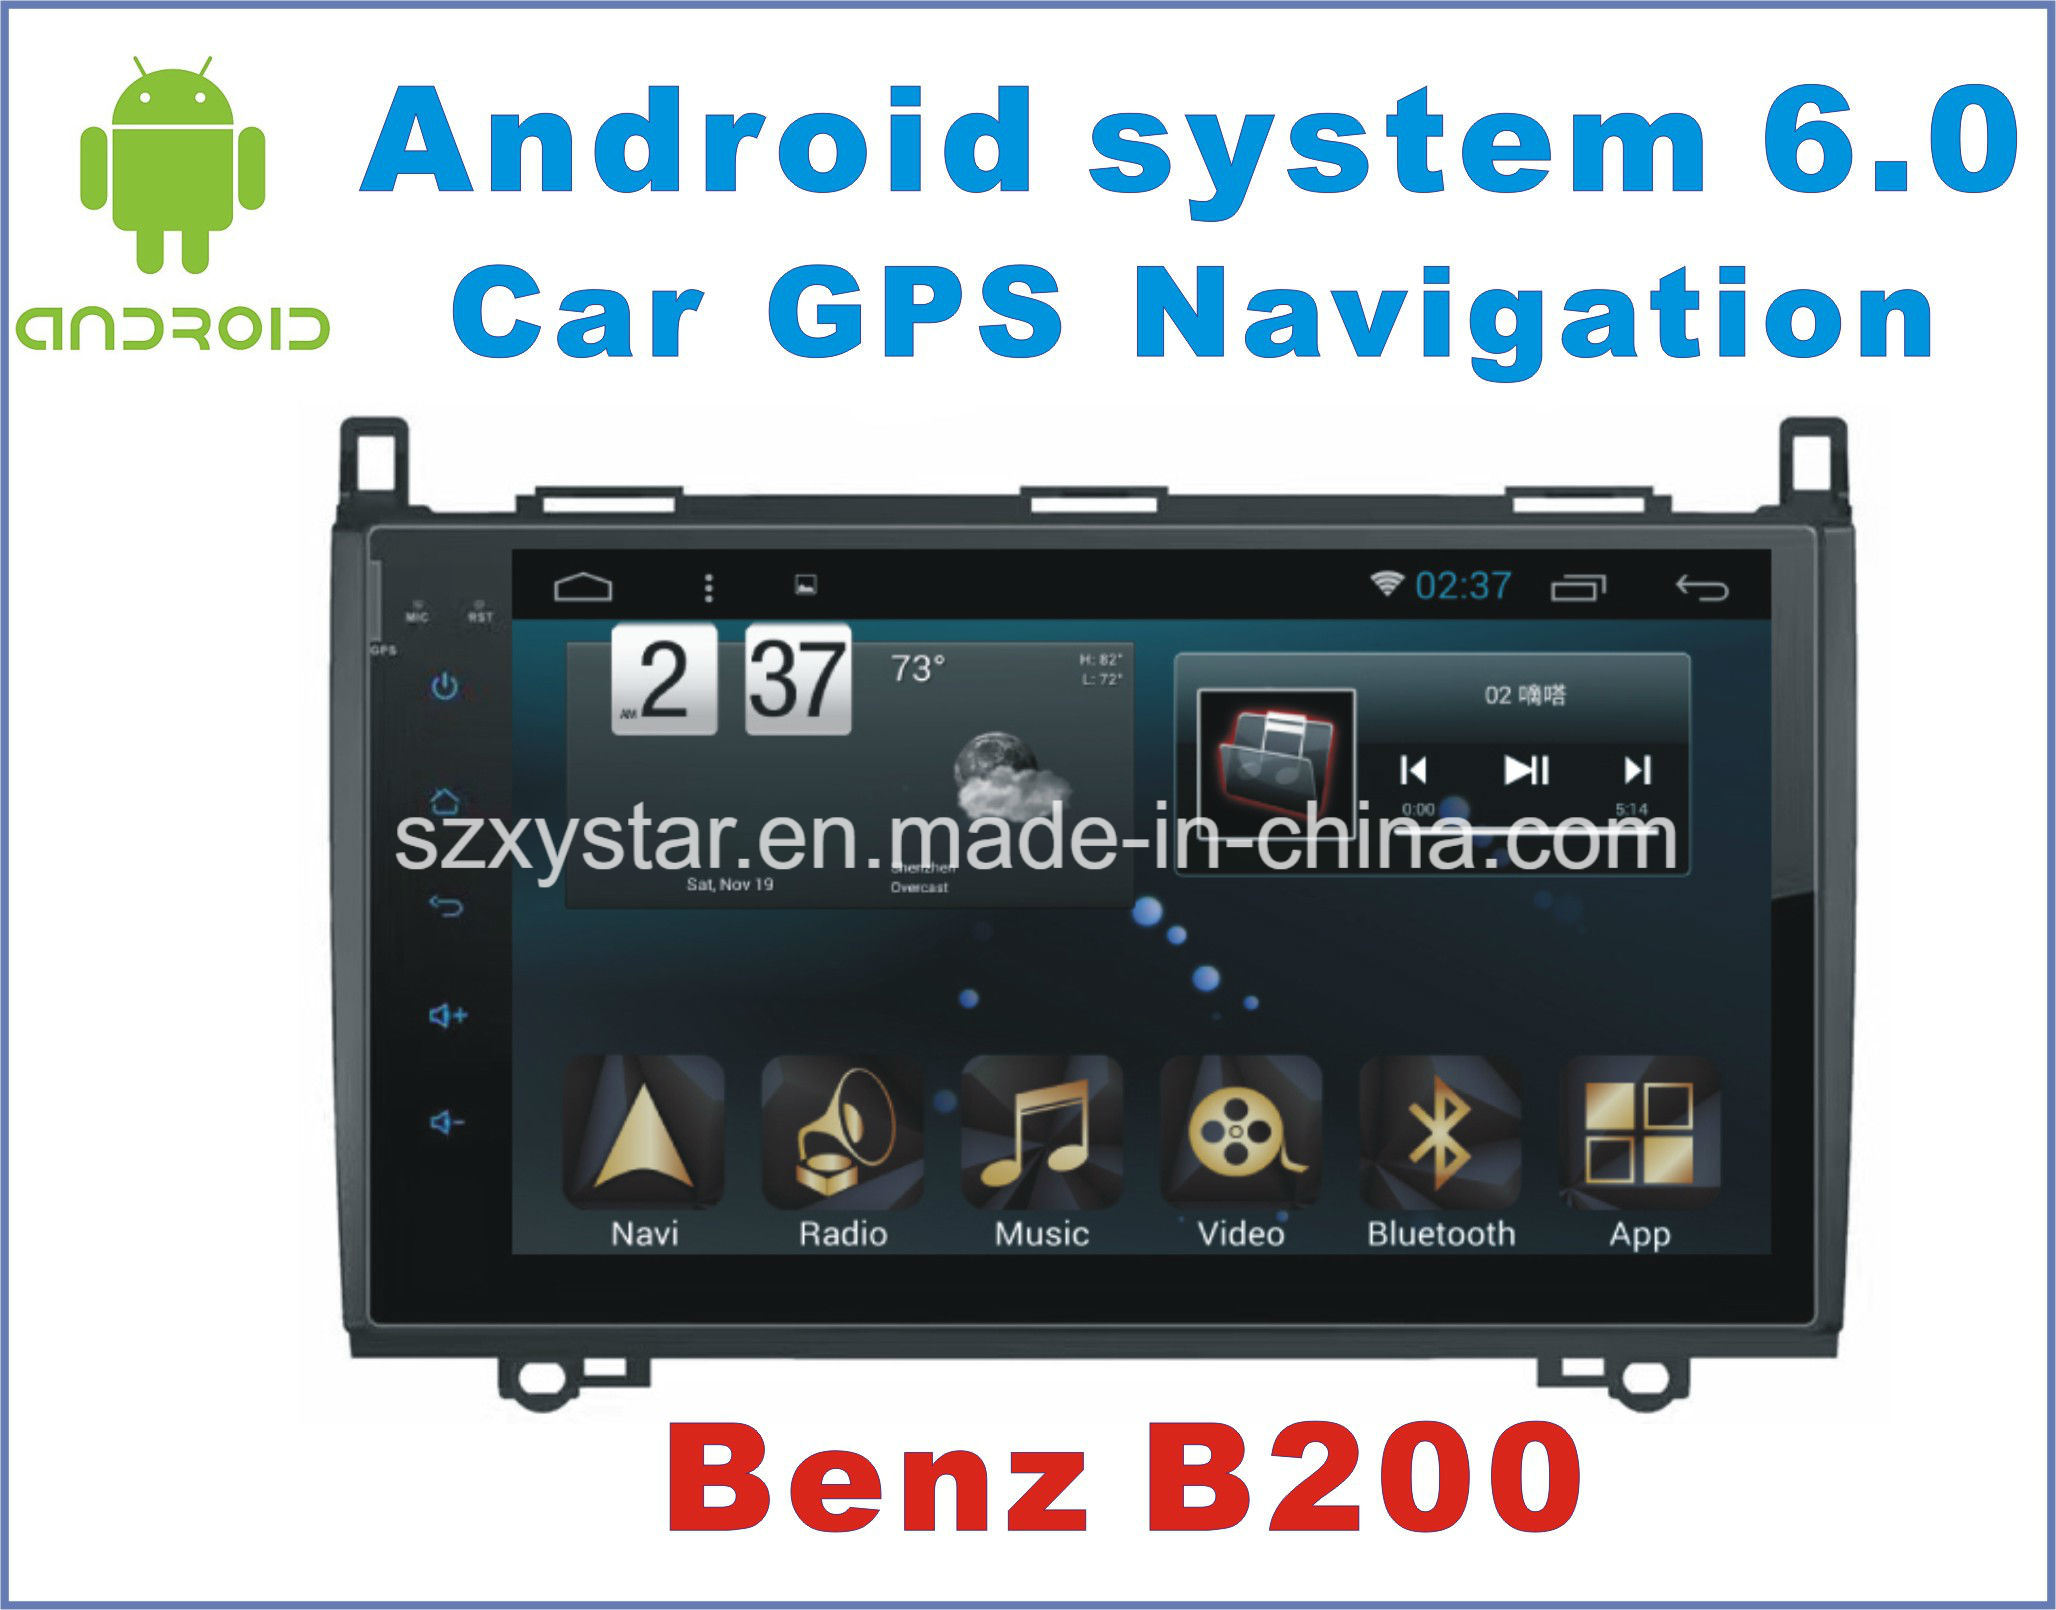 New Ui Android 6.0 Car GPS Navigation for Benz B200 with Car Video